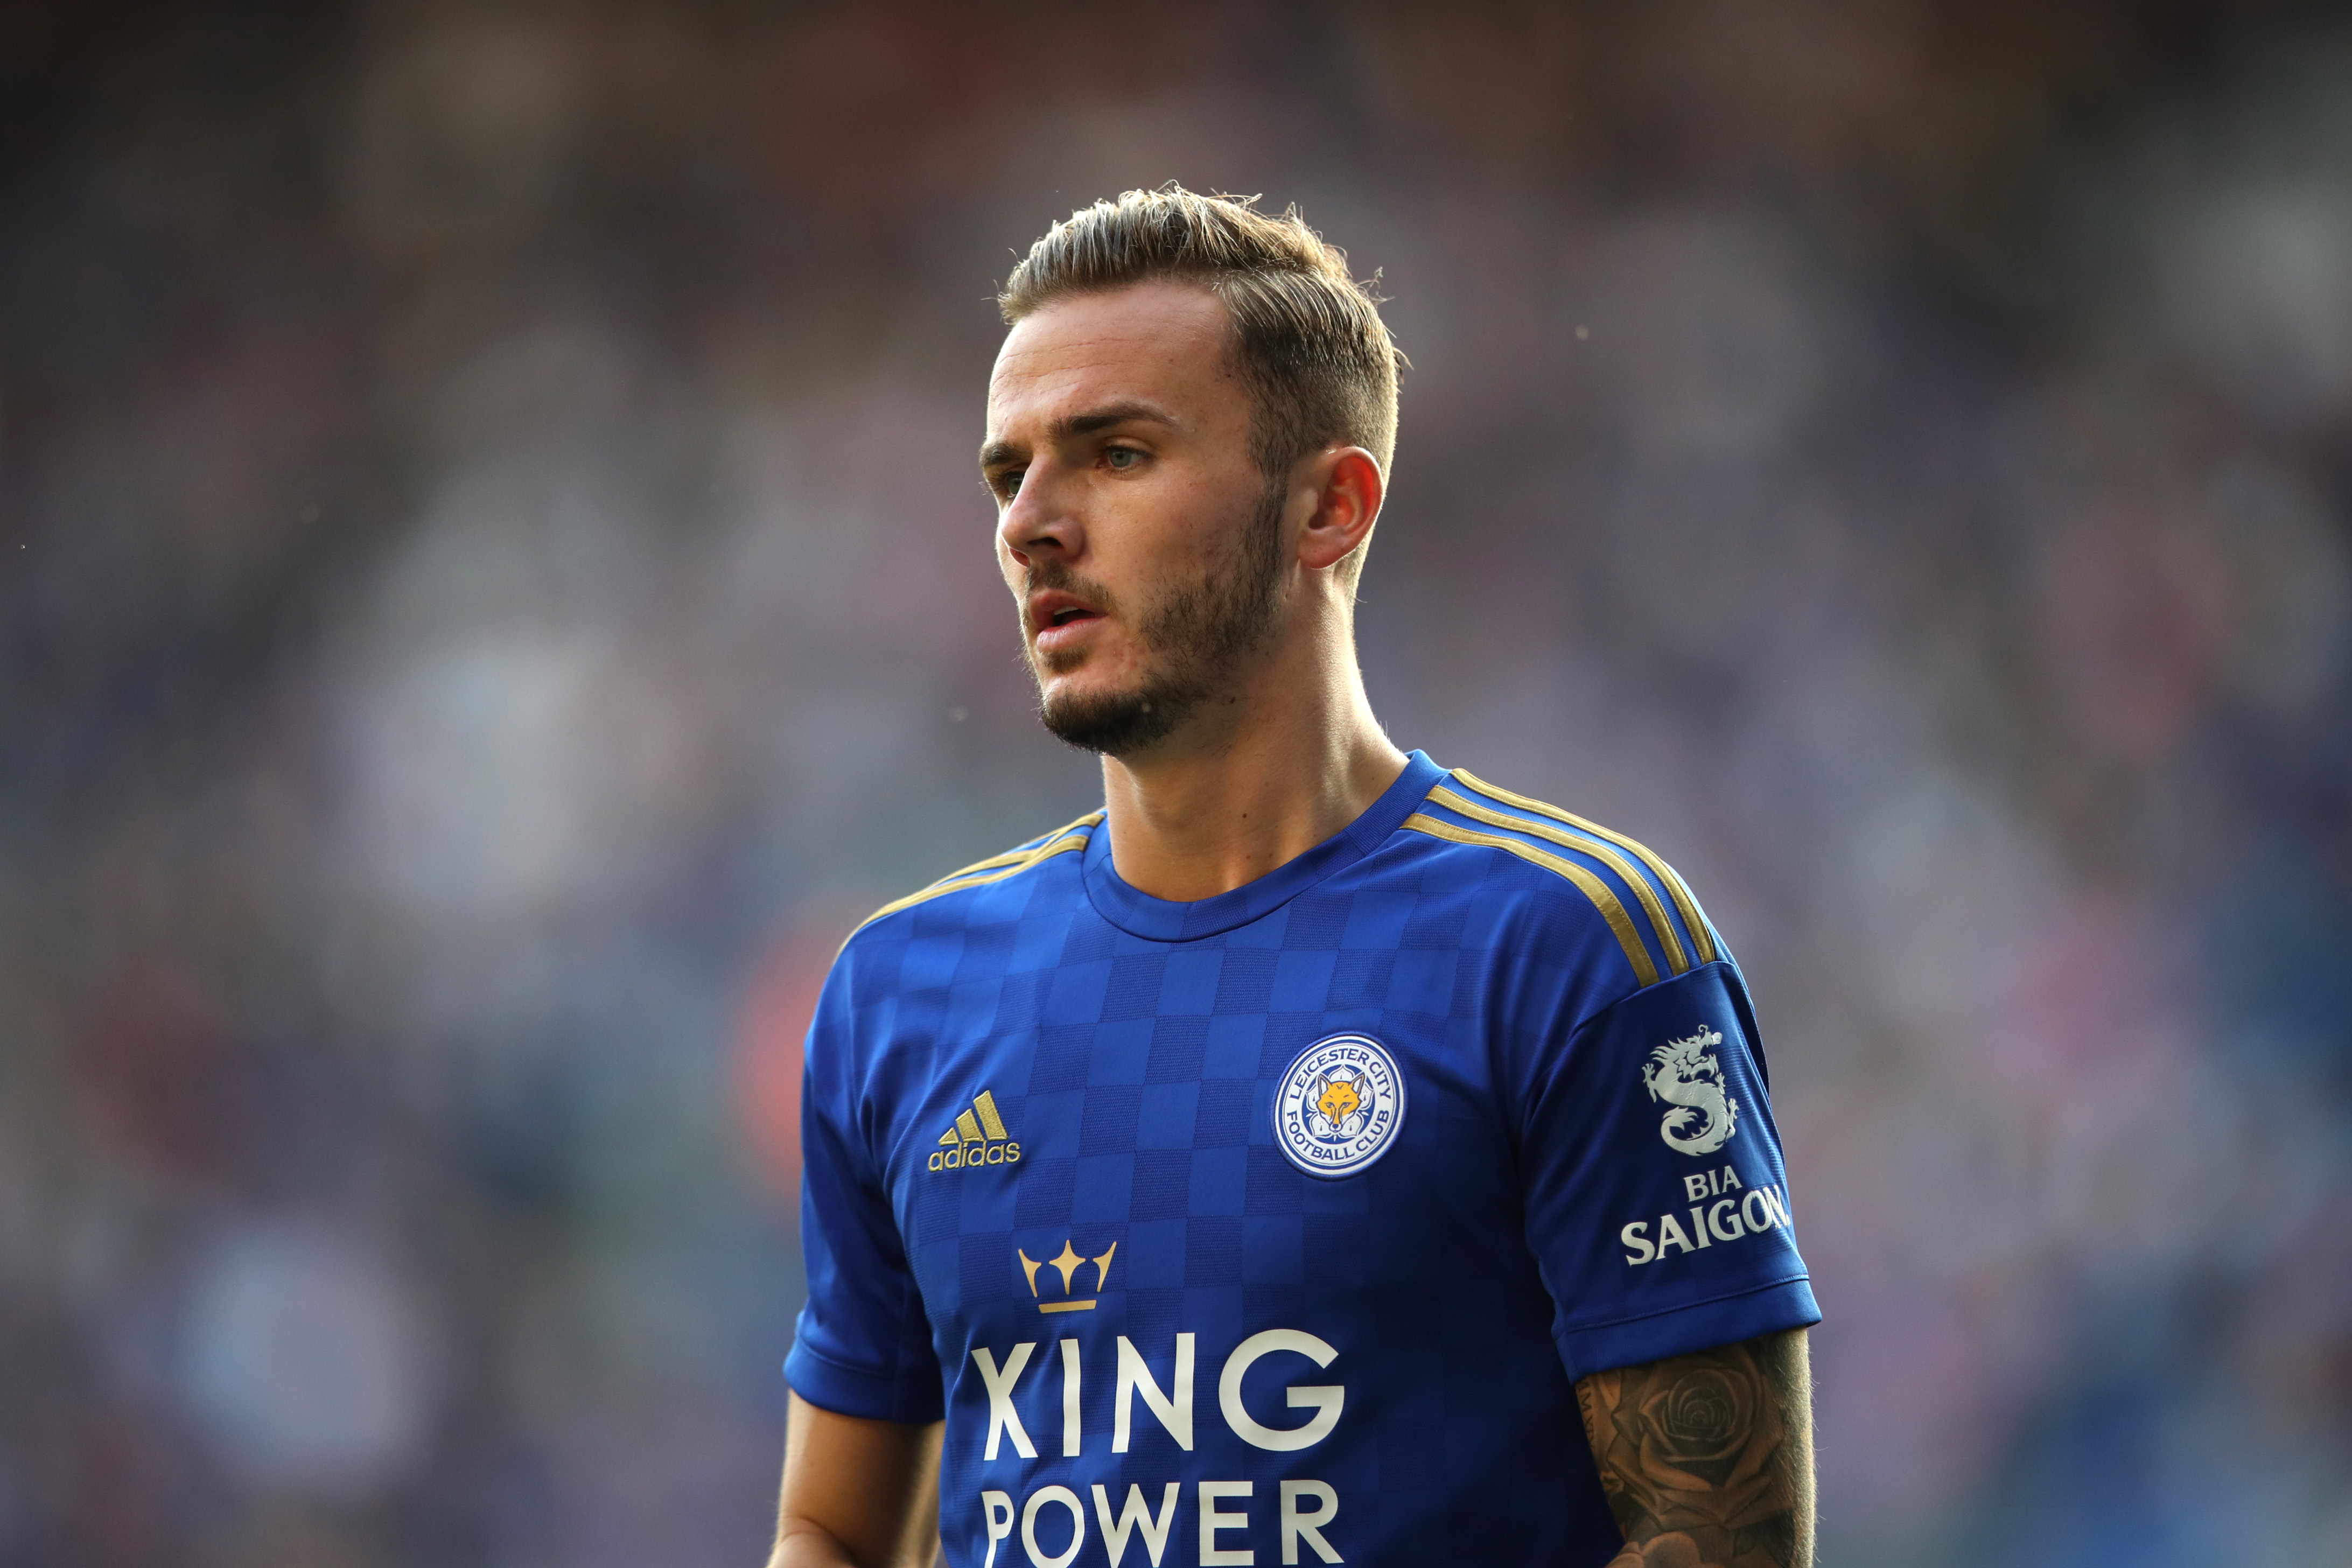 James Maddison has been the fulcrum of this Leicester City side.(Photo by Alex Pantling/Getty Images)